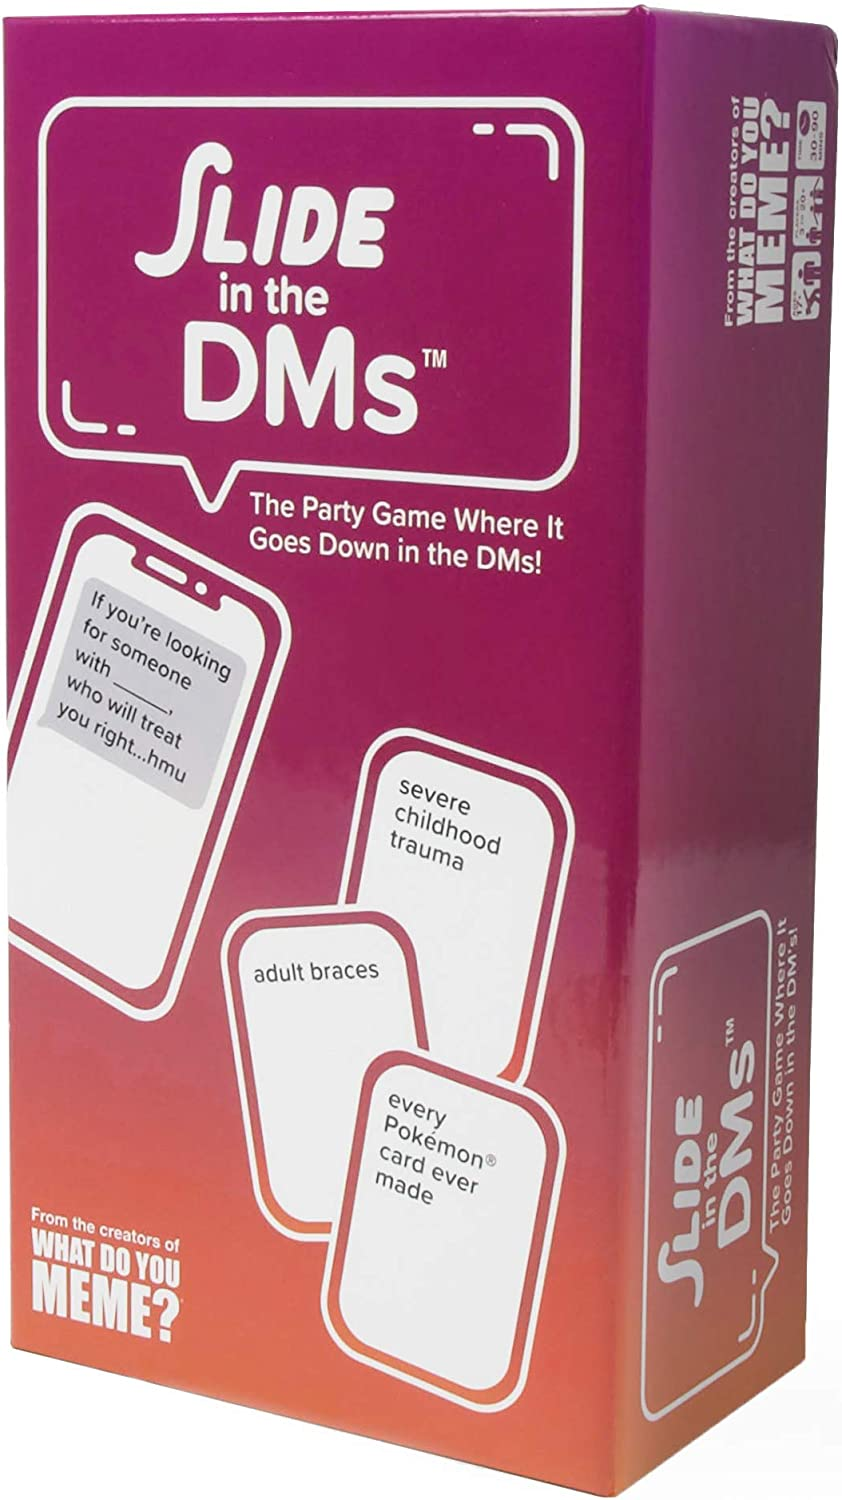 WHAT DO YOU MEME? Slide in The DMs Adult Party Game